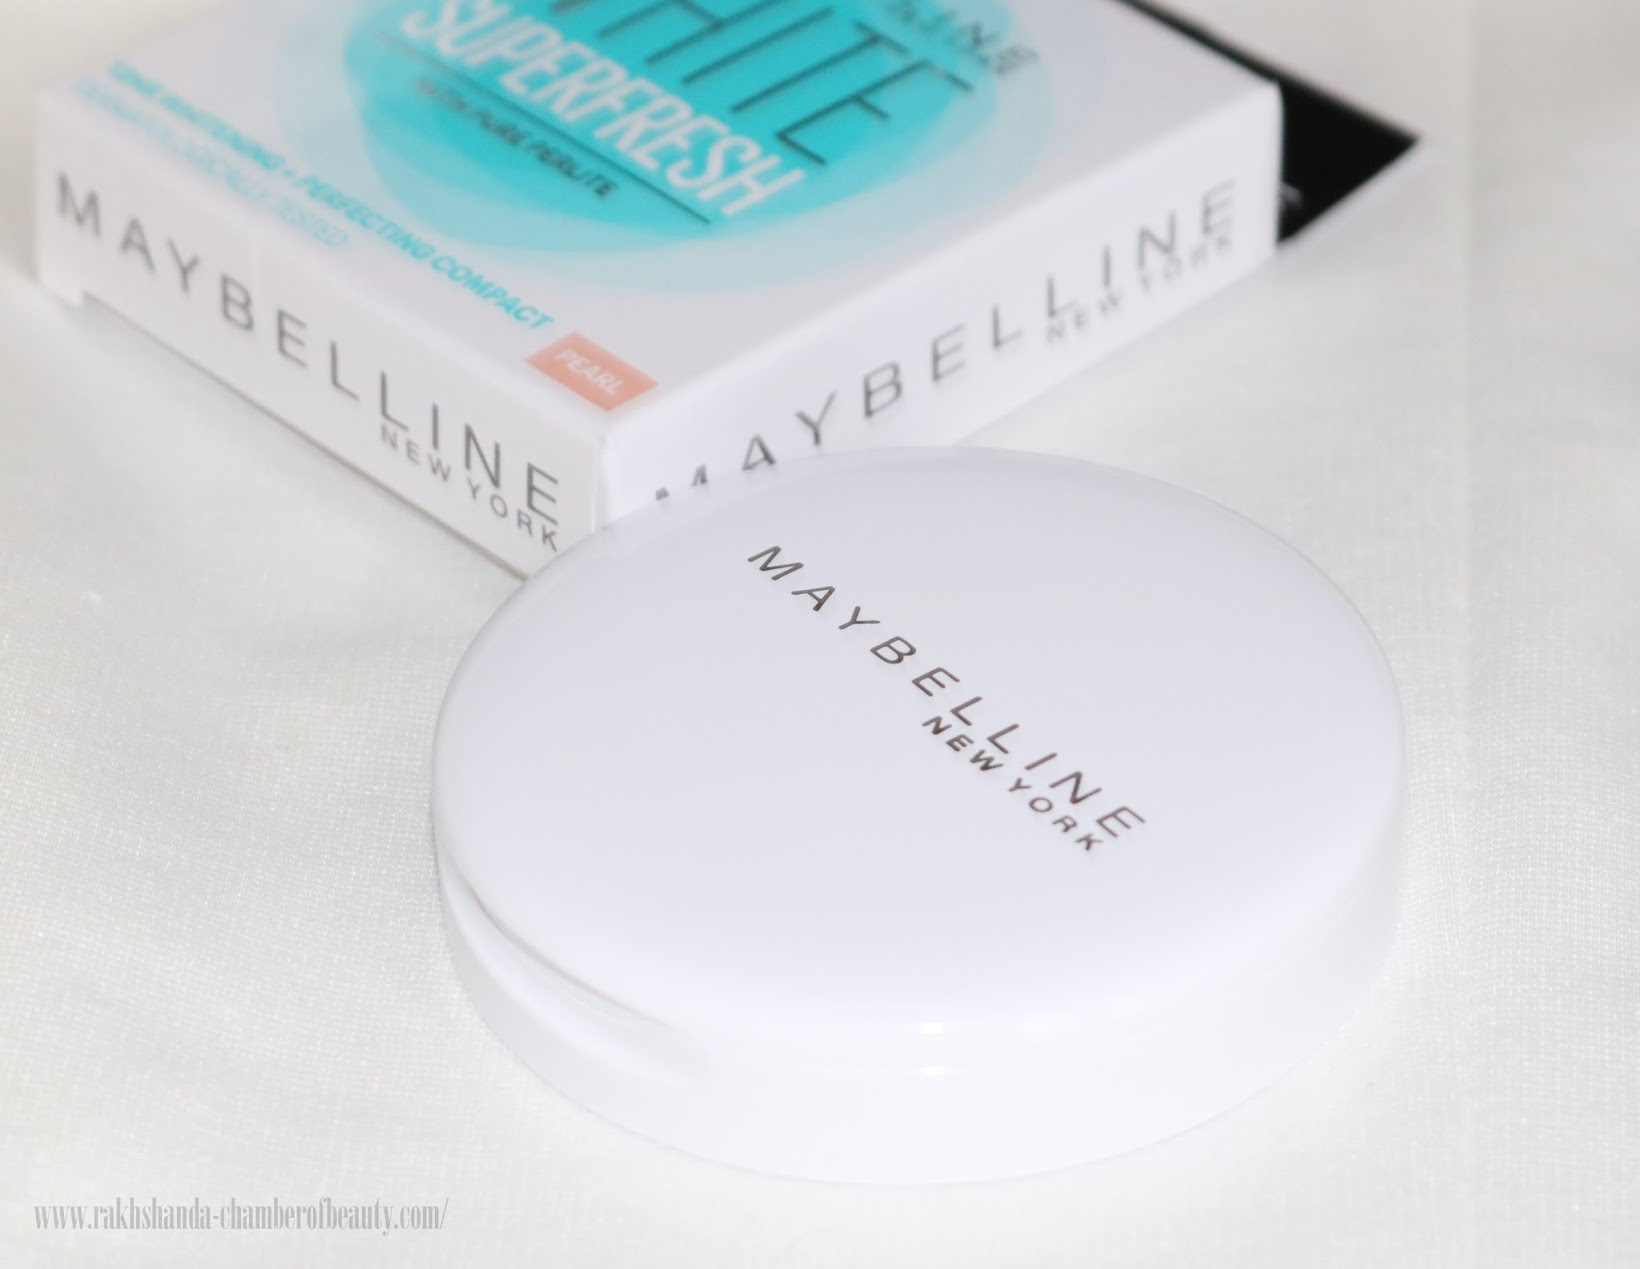 Maybelline White Superfresh 12HR Whitening + Perfecting Compact Review, Swatches & Price in India